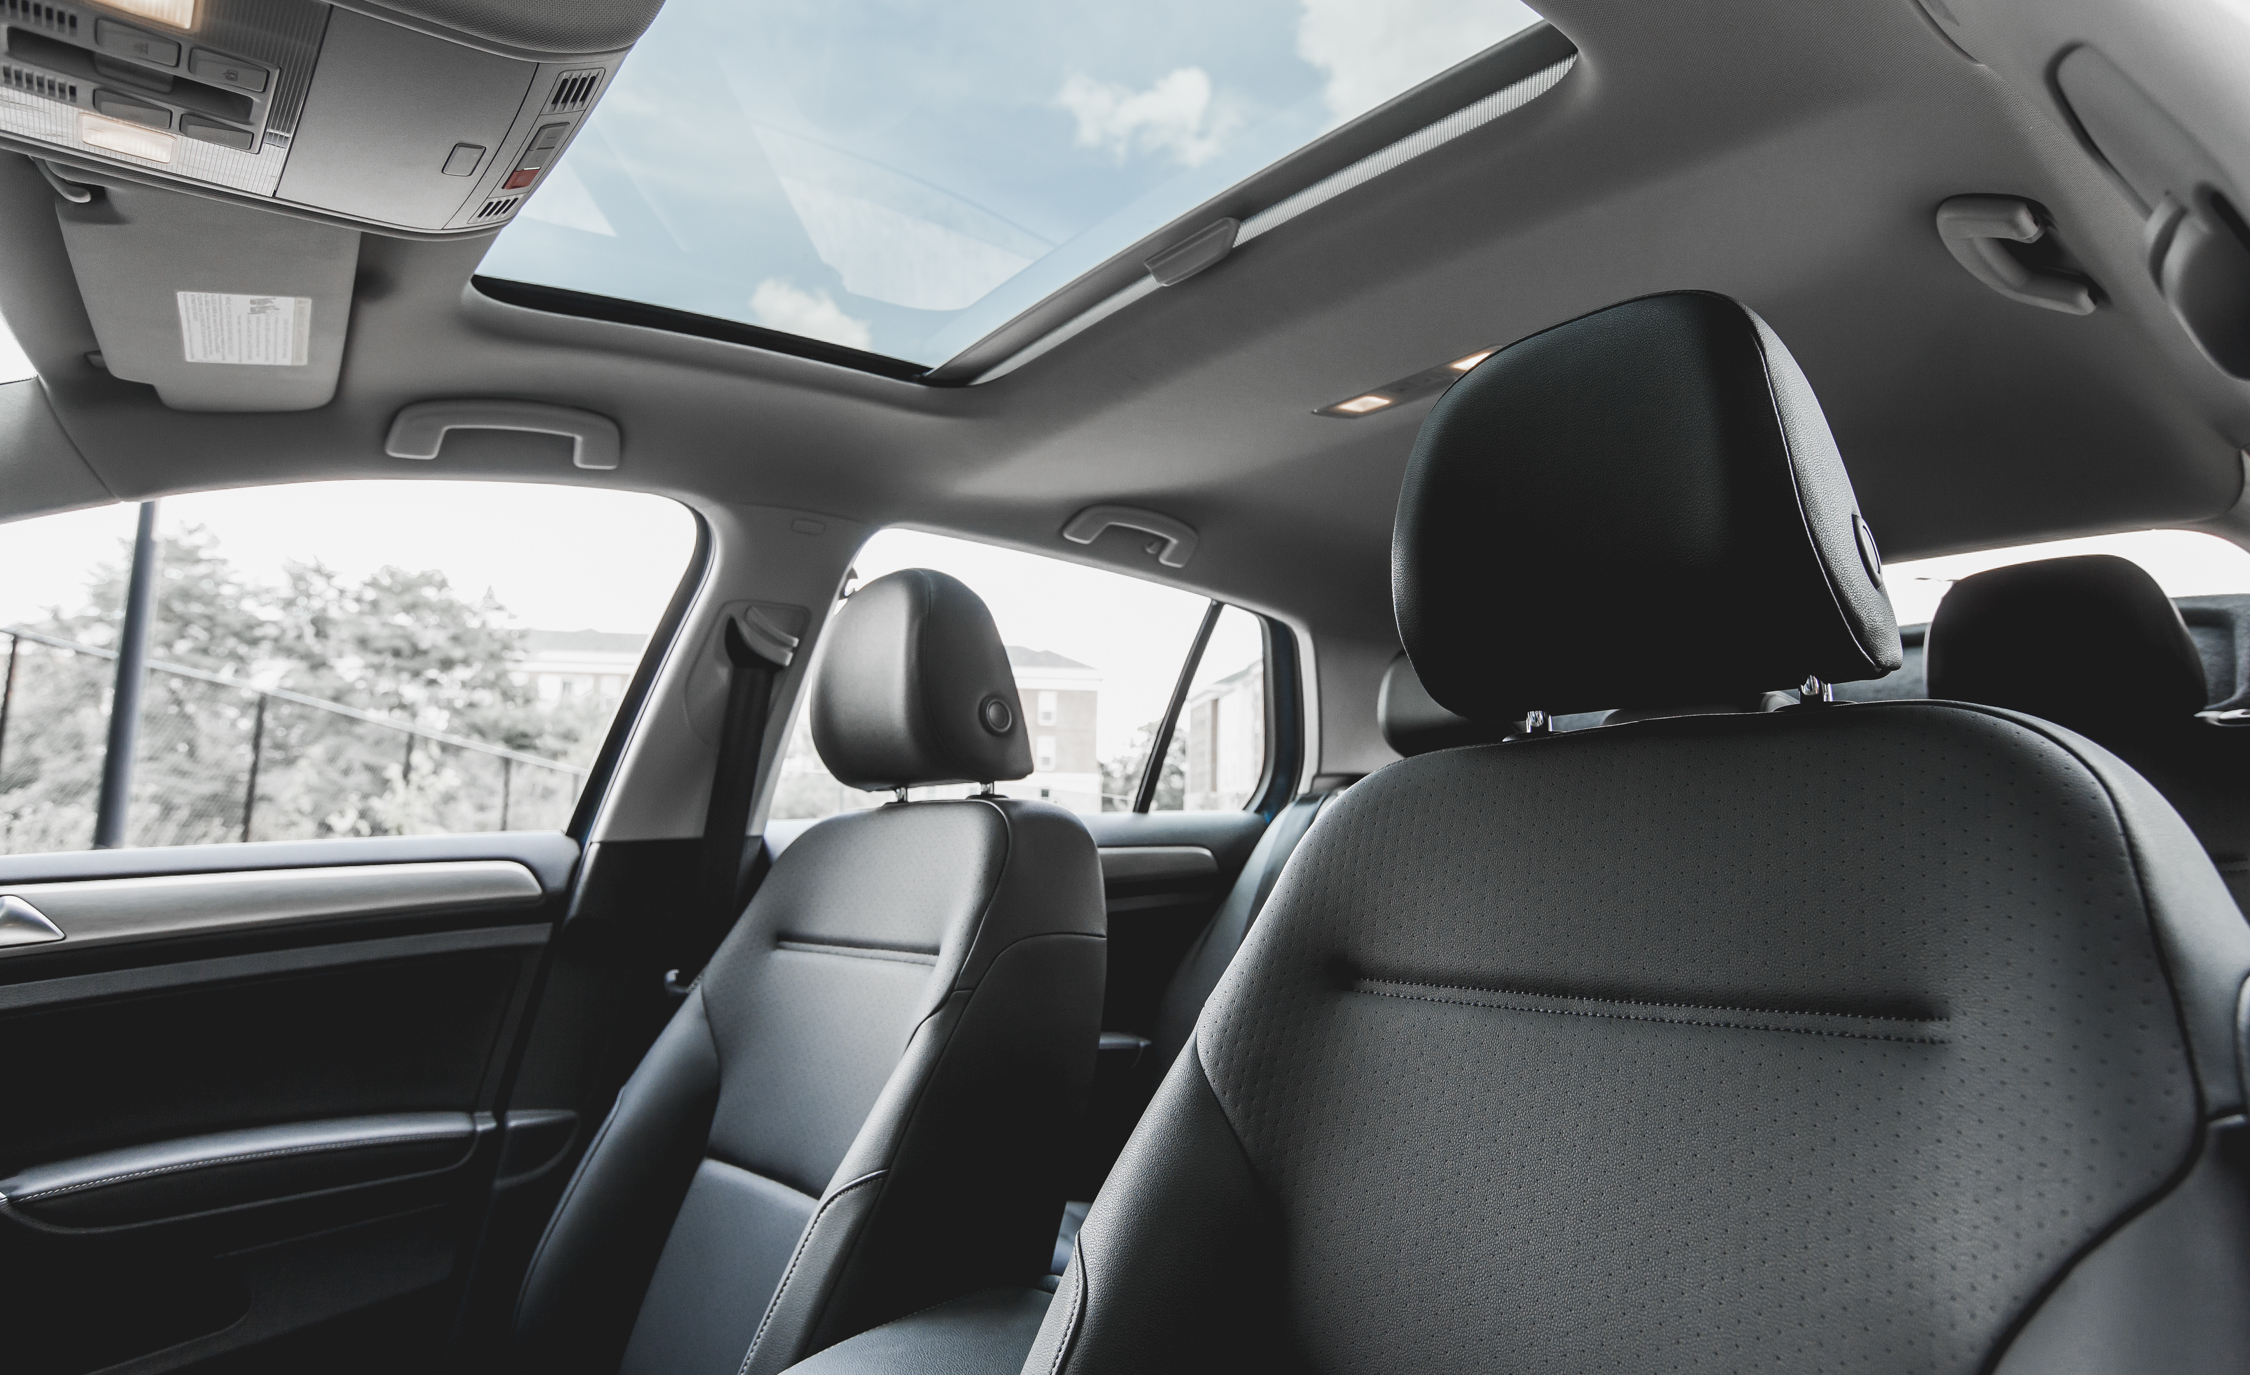 2015 Volkswagen Golf TSI Interior Seats and Panoramic Roof